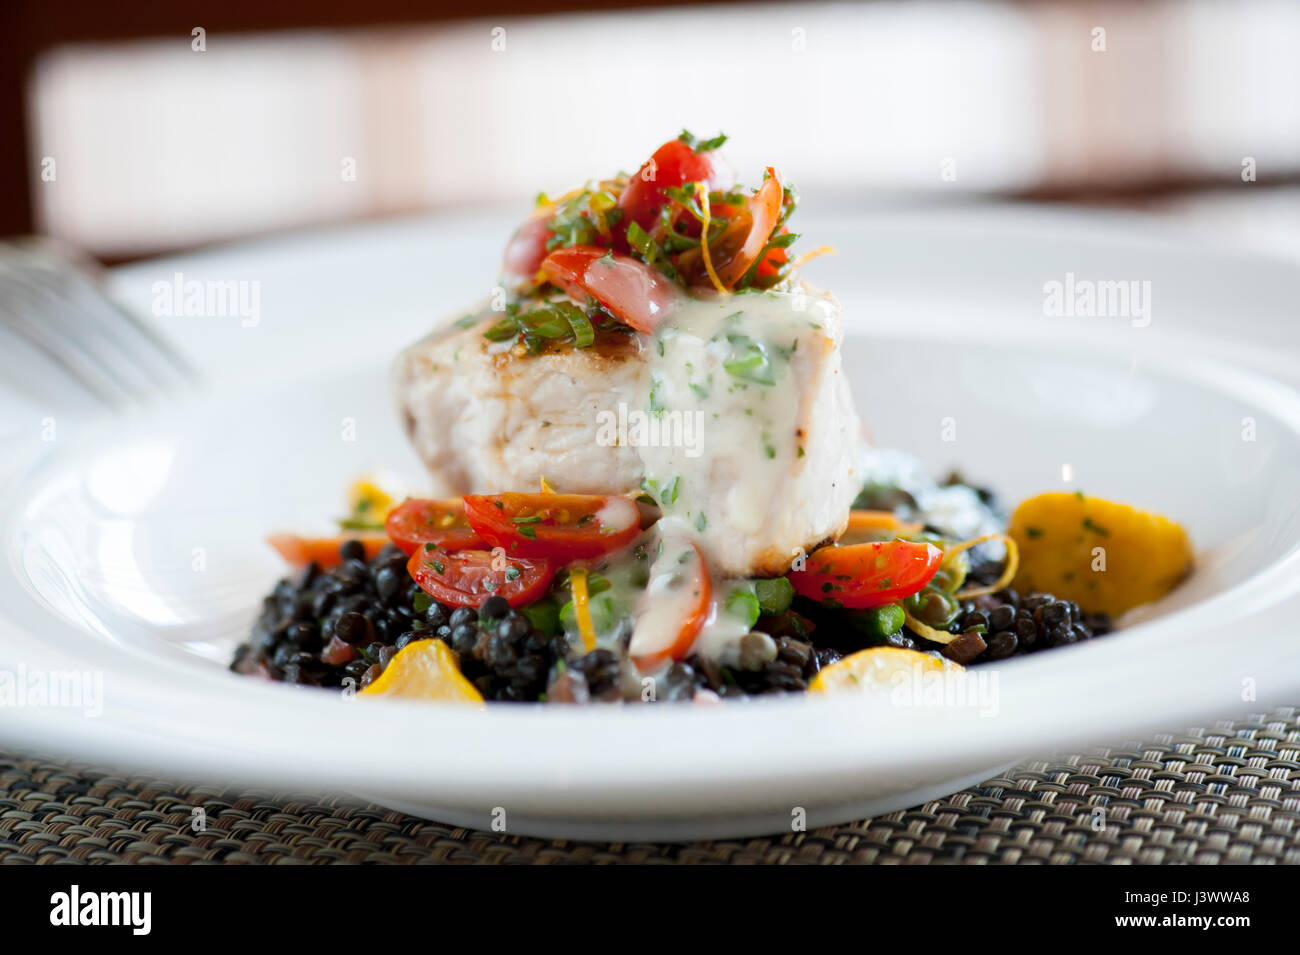 usa-food-swordfish-steak-on-a-bed-of-lentils-at-the-waypoint-seafood-J3WWA8.jpg